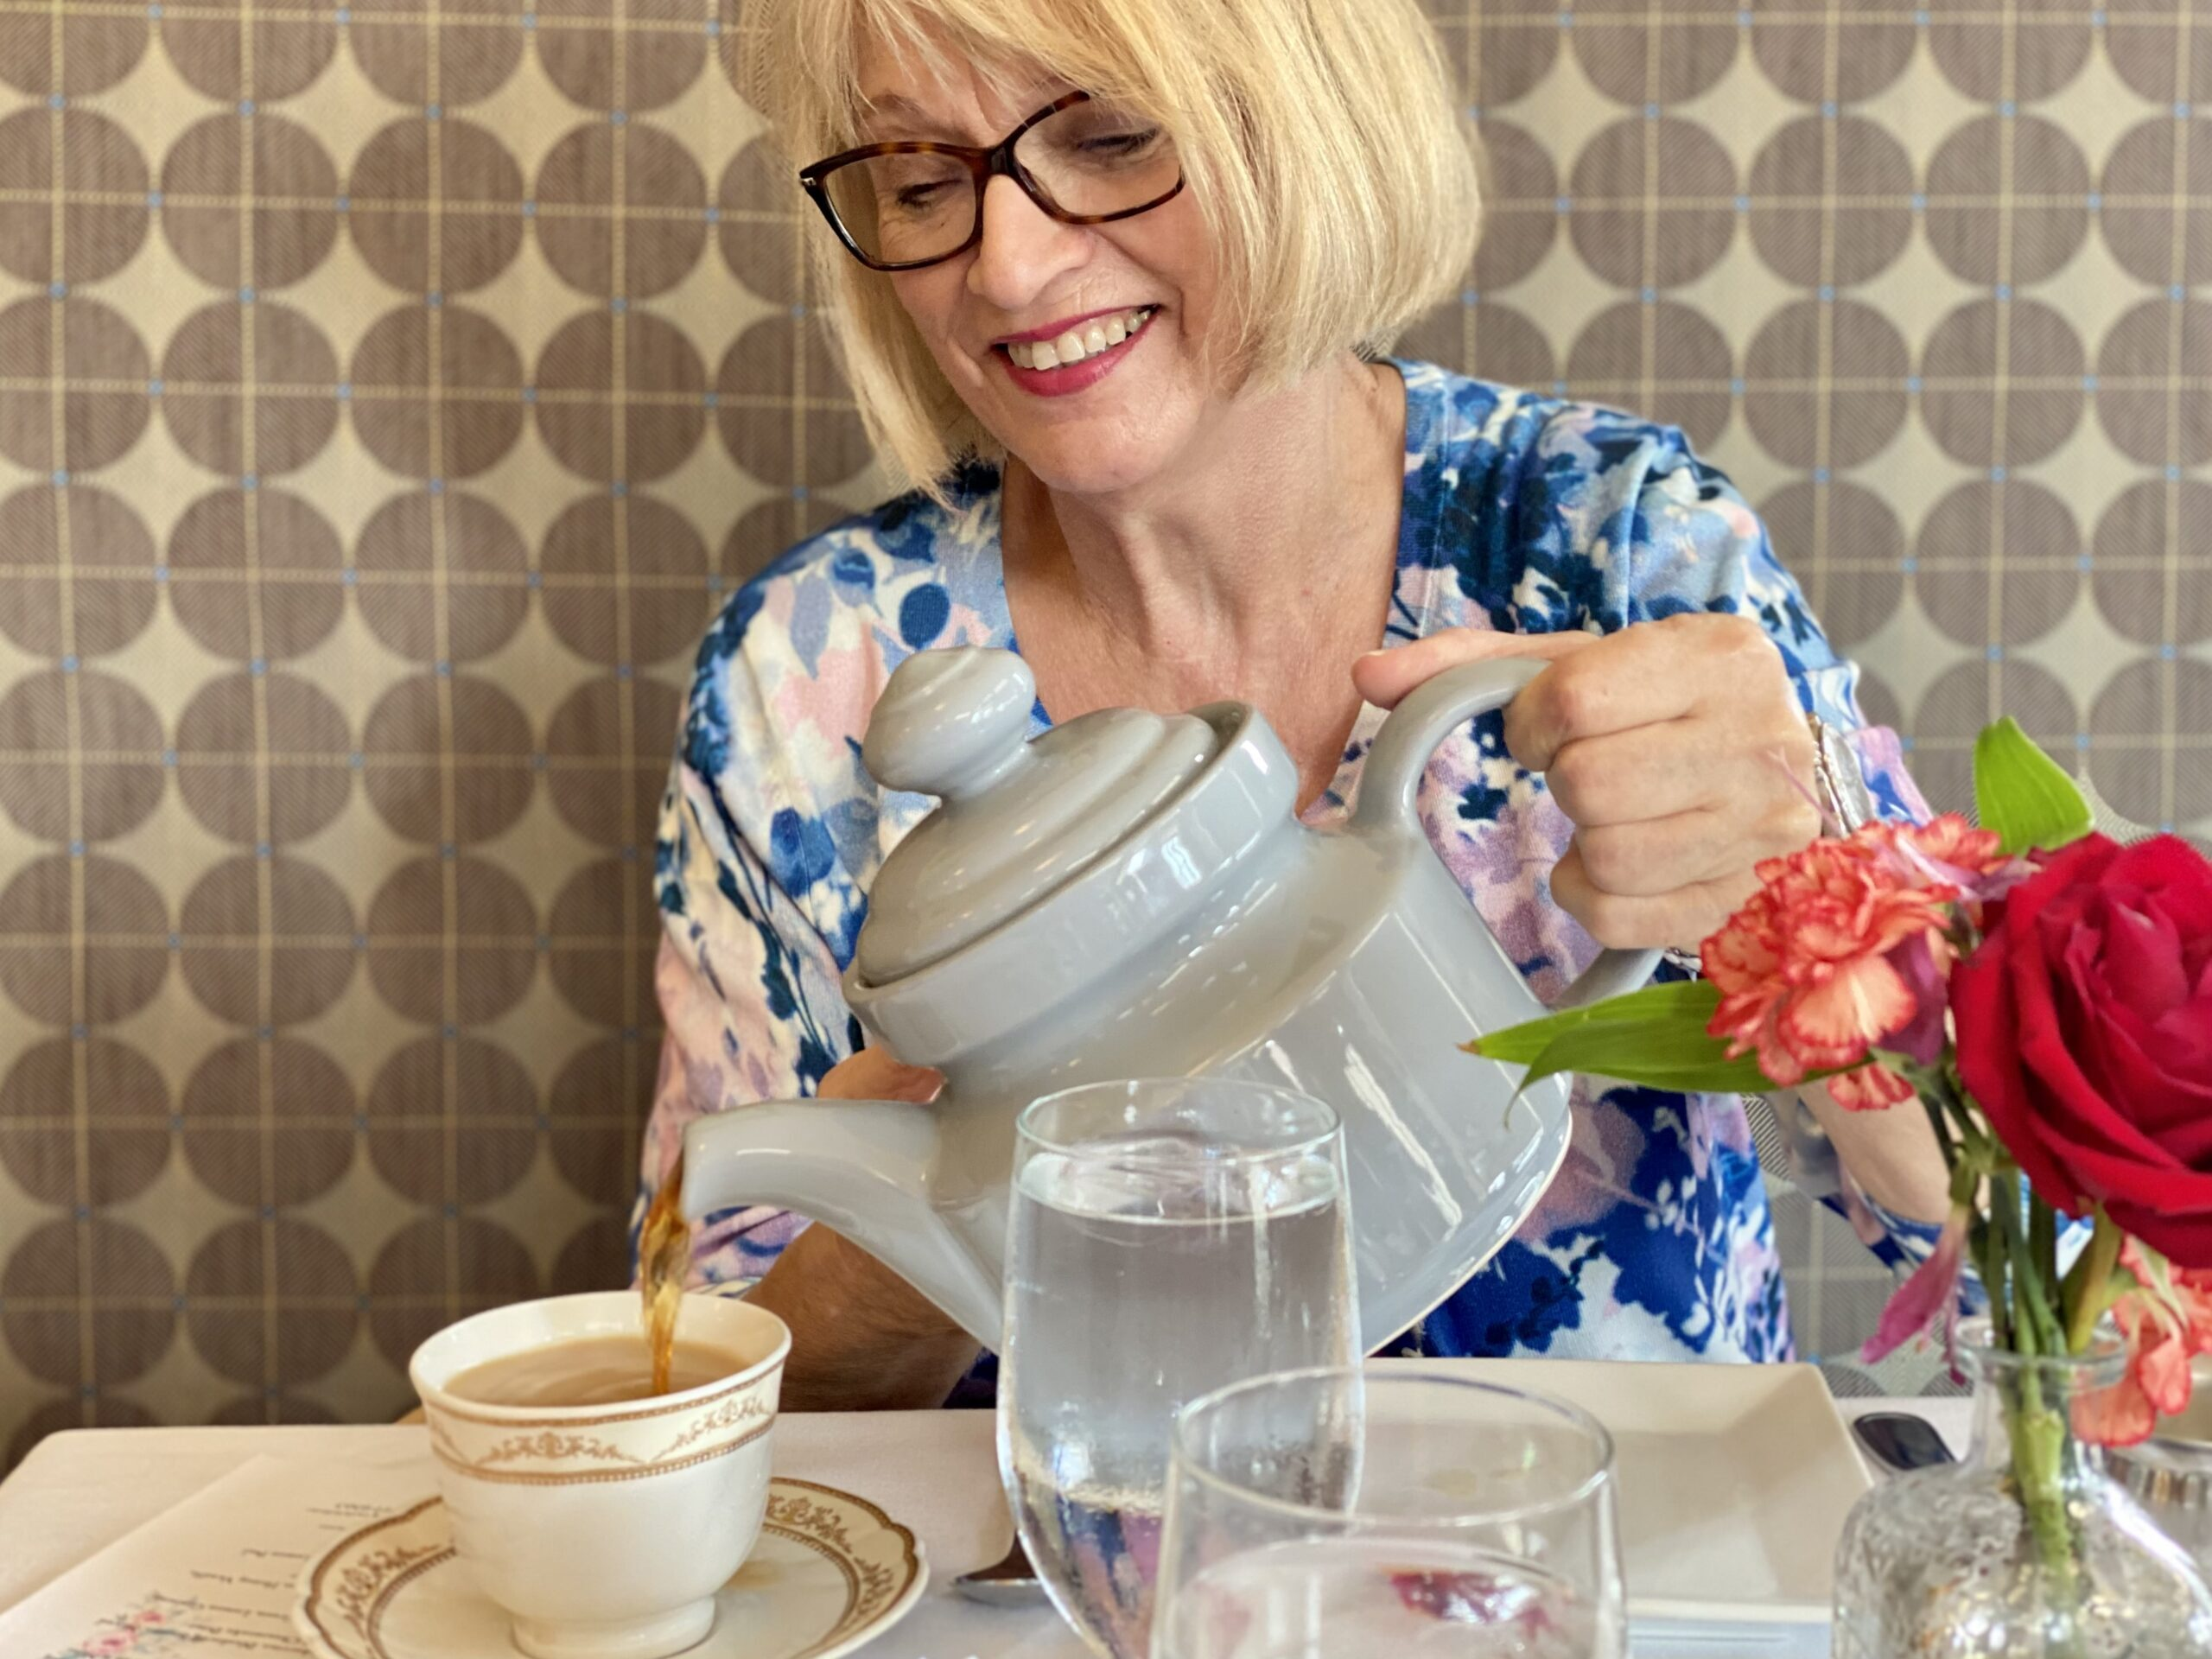 Things to do in Prescott AZ - Woman smiling while pouring a cup of tea